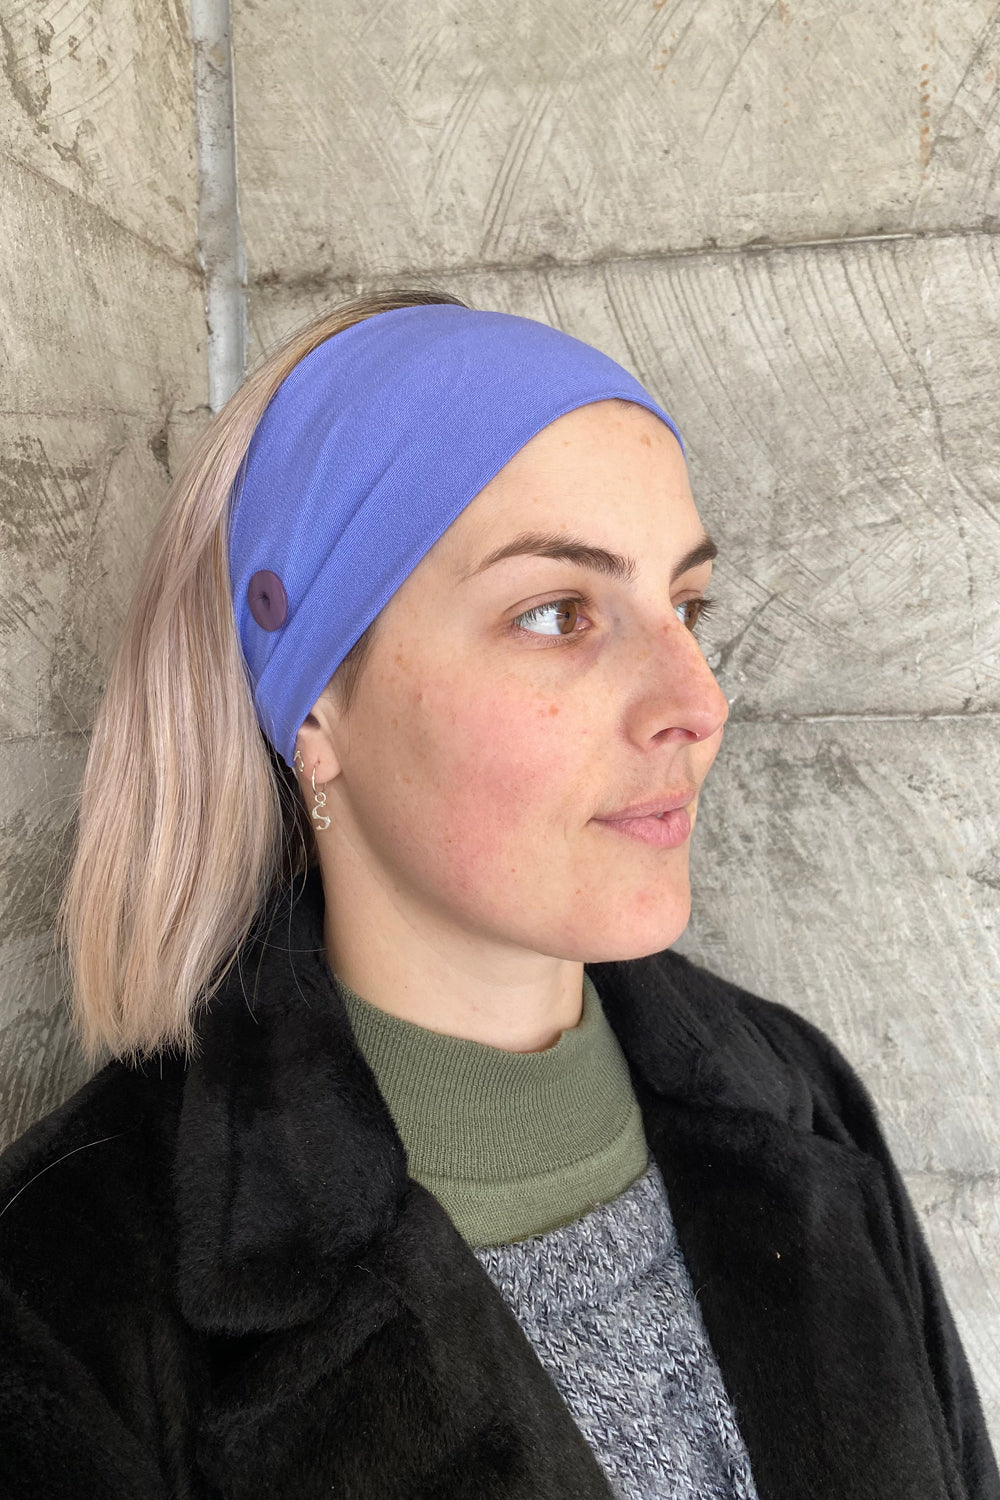 Headband for Face Mask Wear - Pack of 2 Sky Blue